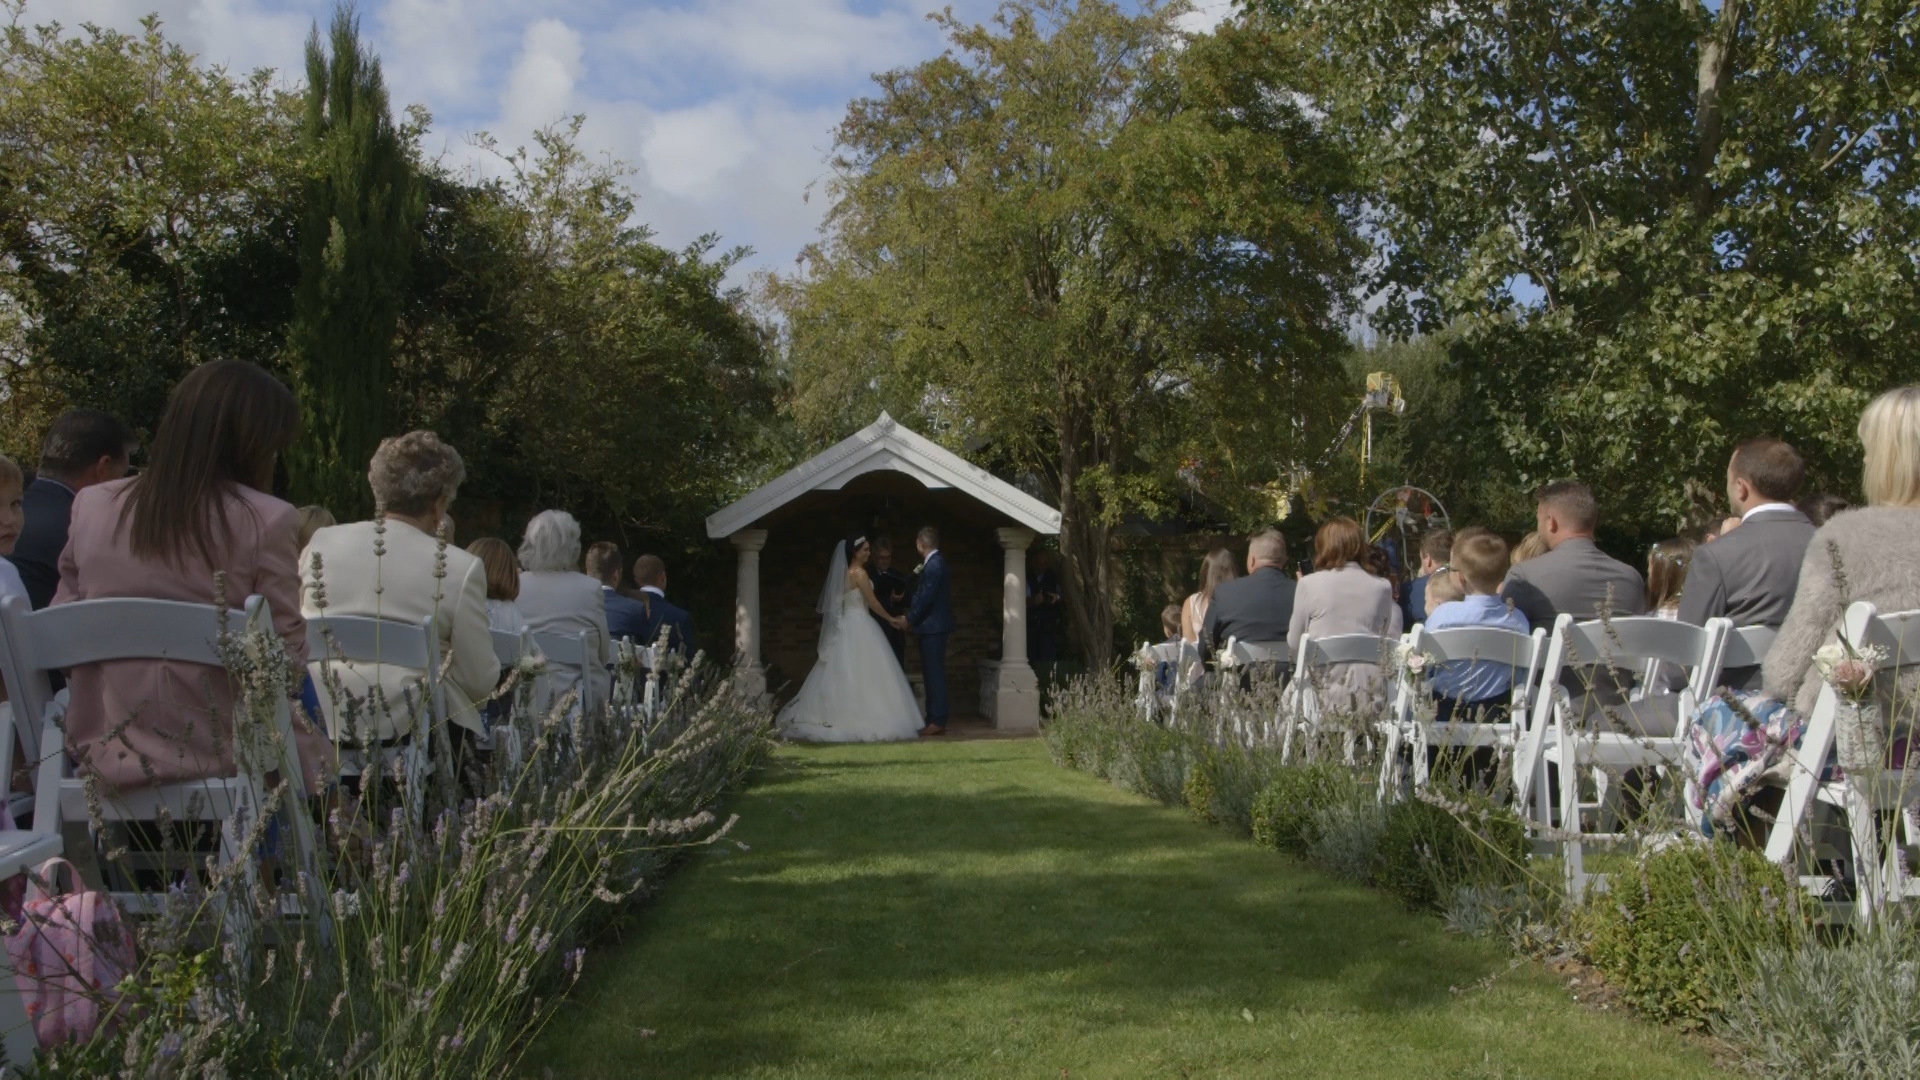 kent wedding video kent wedding film wedding video kent wedding videography kent wedding film wedding videography kent